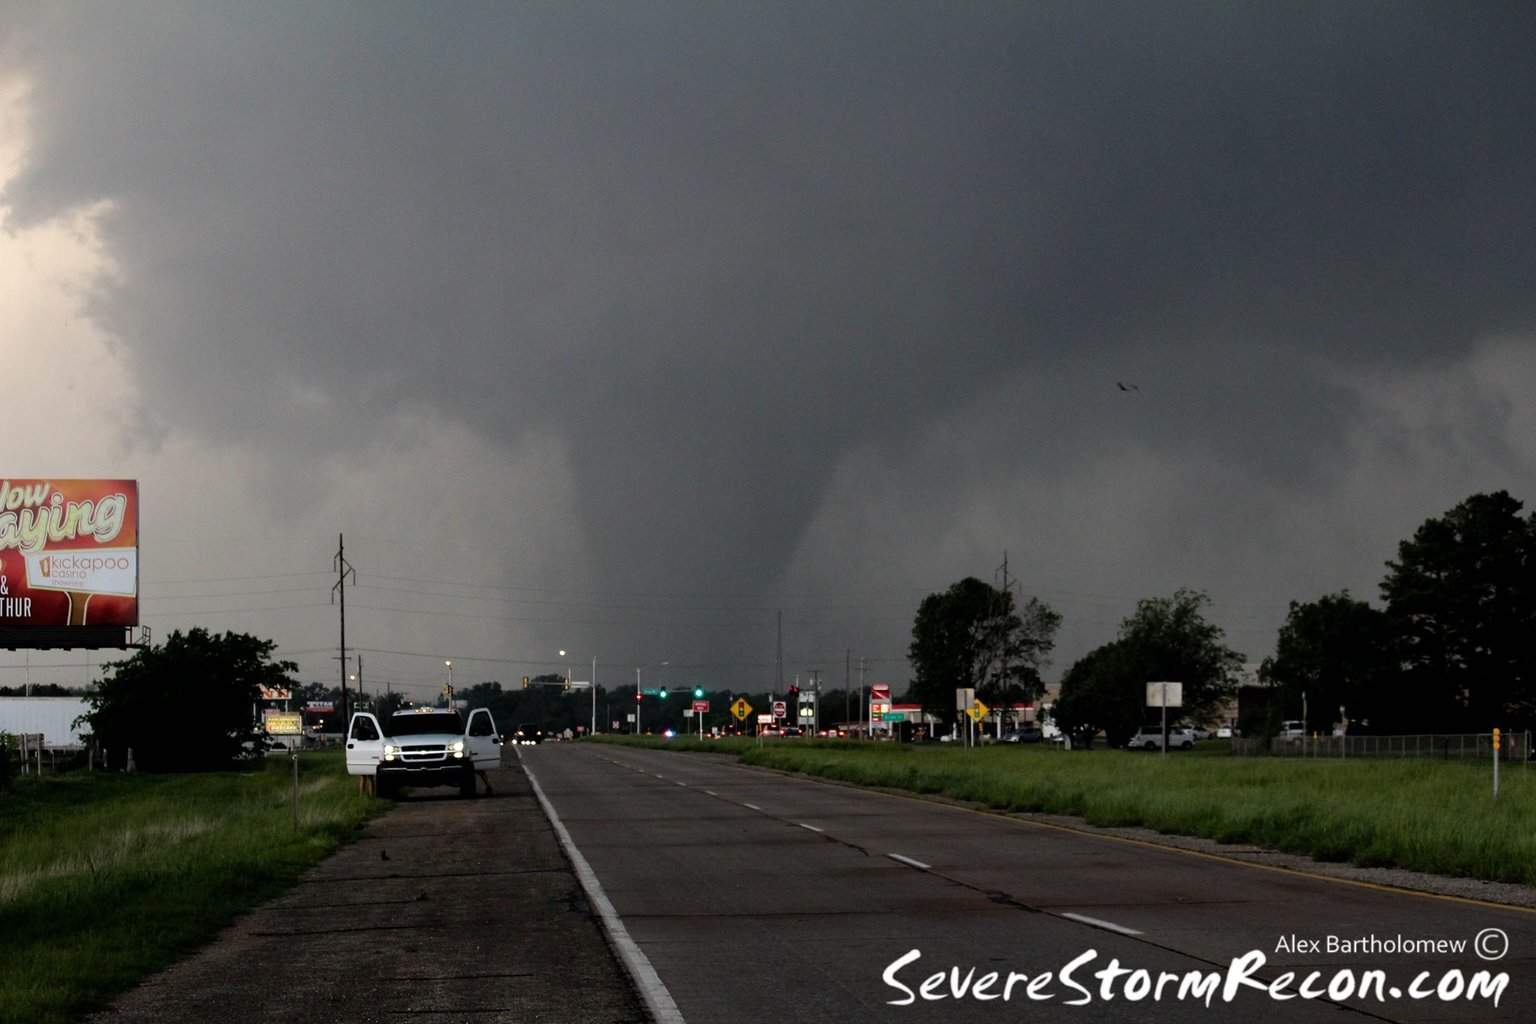 May 19th,2013 was the best chase day I have ever had. Amazing structure and numerous tornadoes including the one pictured below. This was the Shawnee,Ok EF4 tornado. This is the most violent tornado I have ever seen